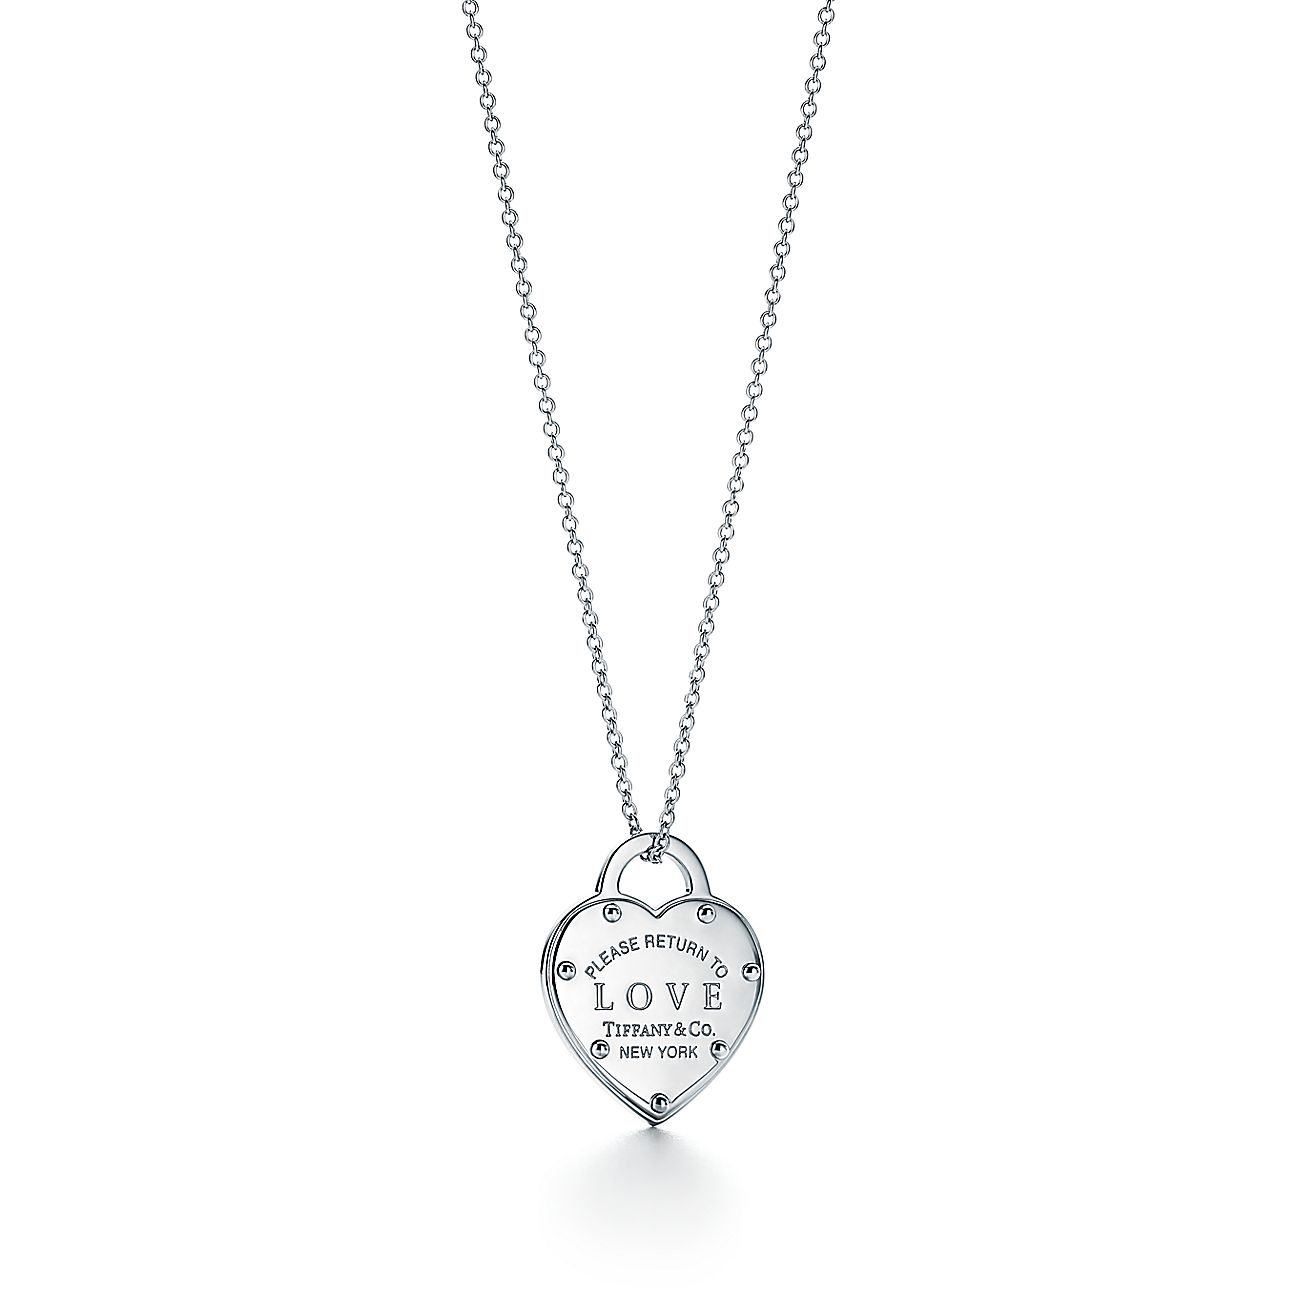 Return to tiffany sterling silver love heart pendant tiffany co return to tiffany sterling silver love heart pendant tiffany co tiffany co aloadofball Gallery